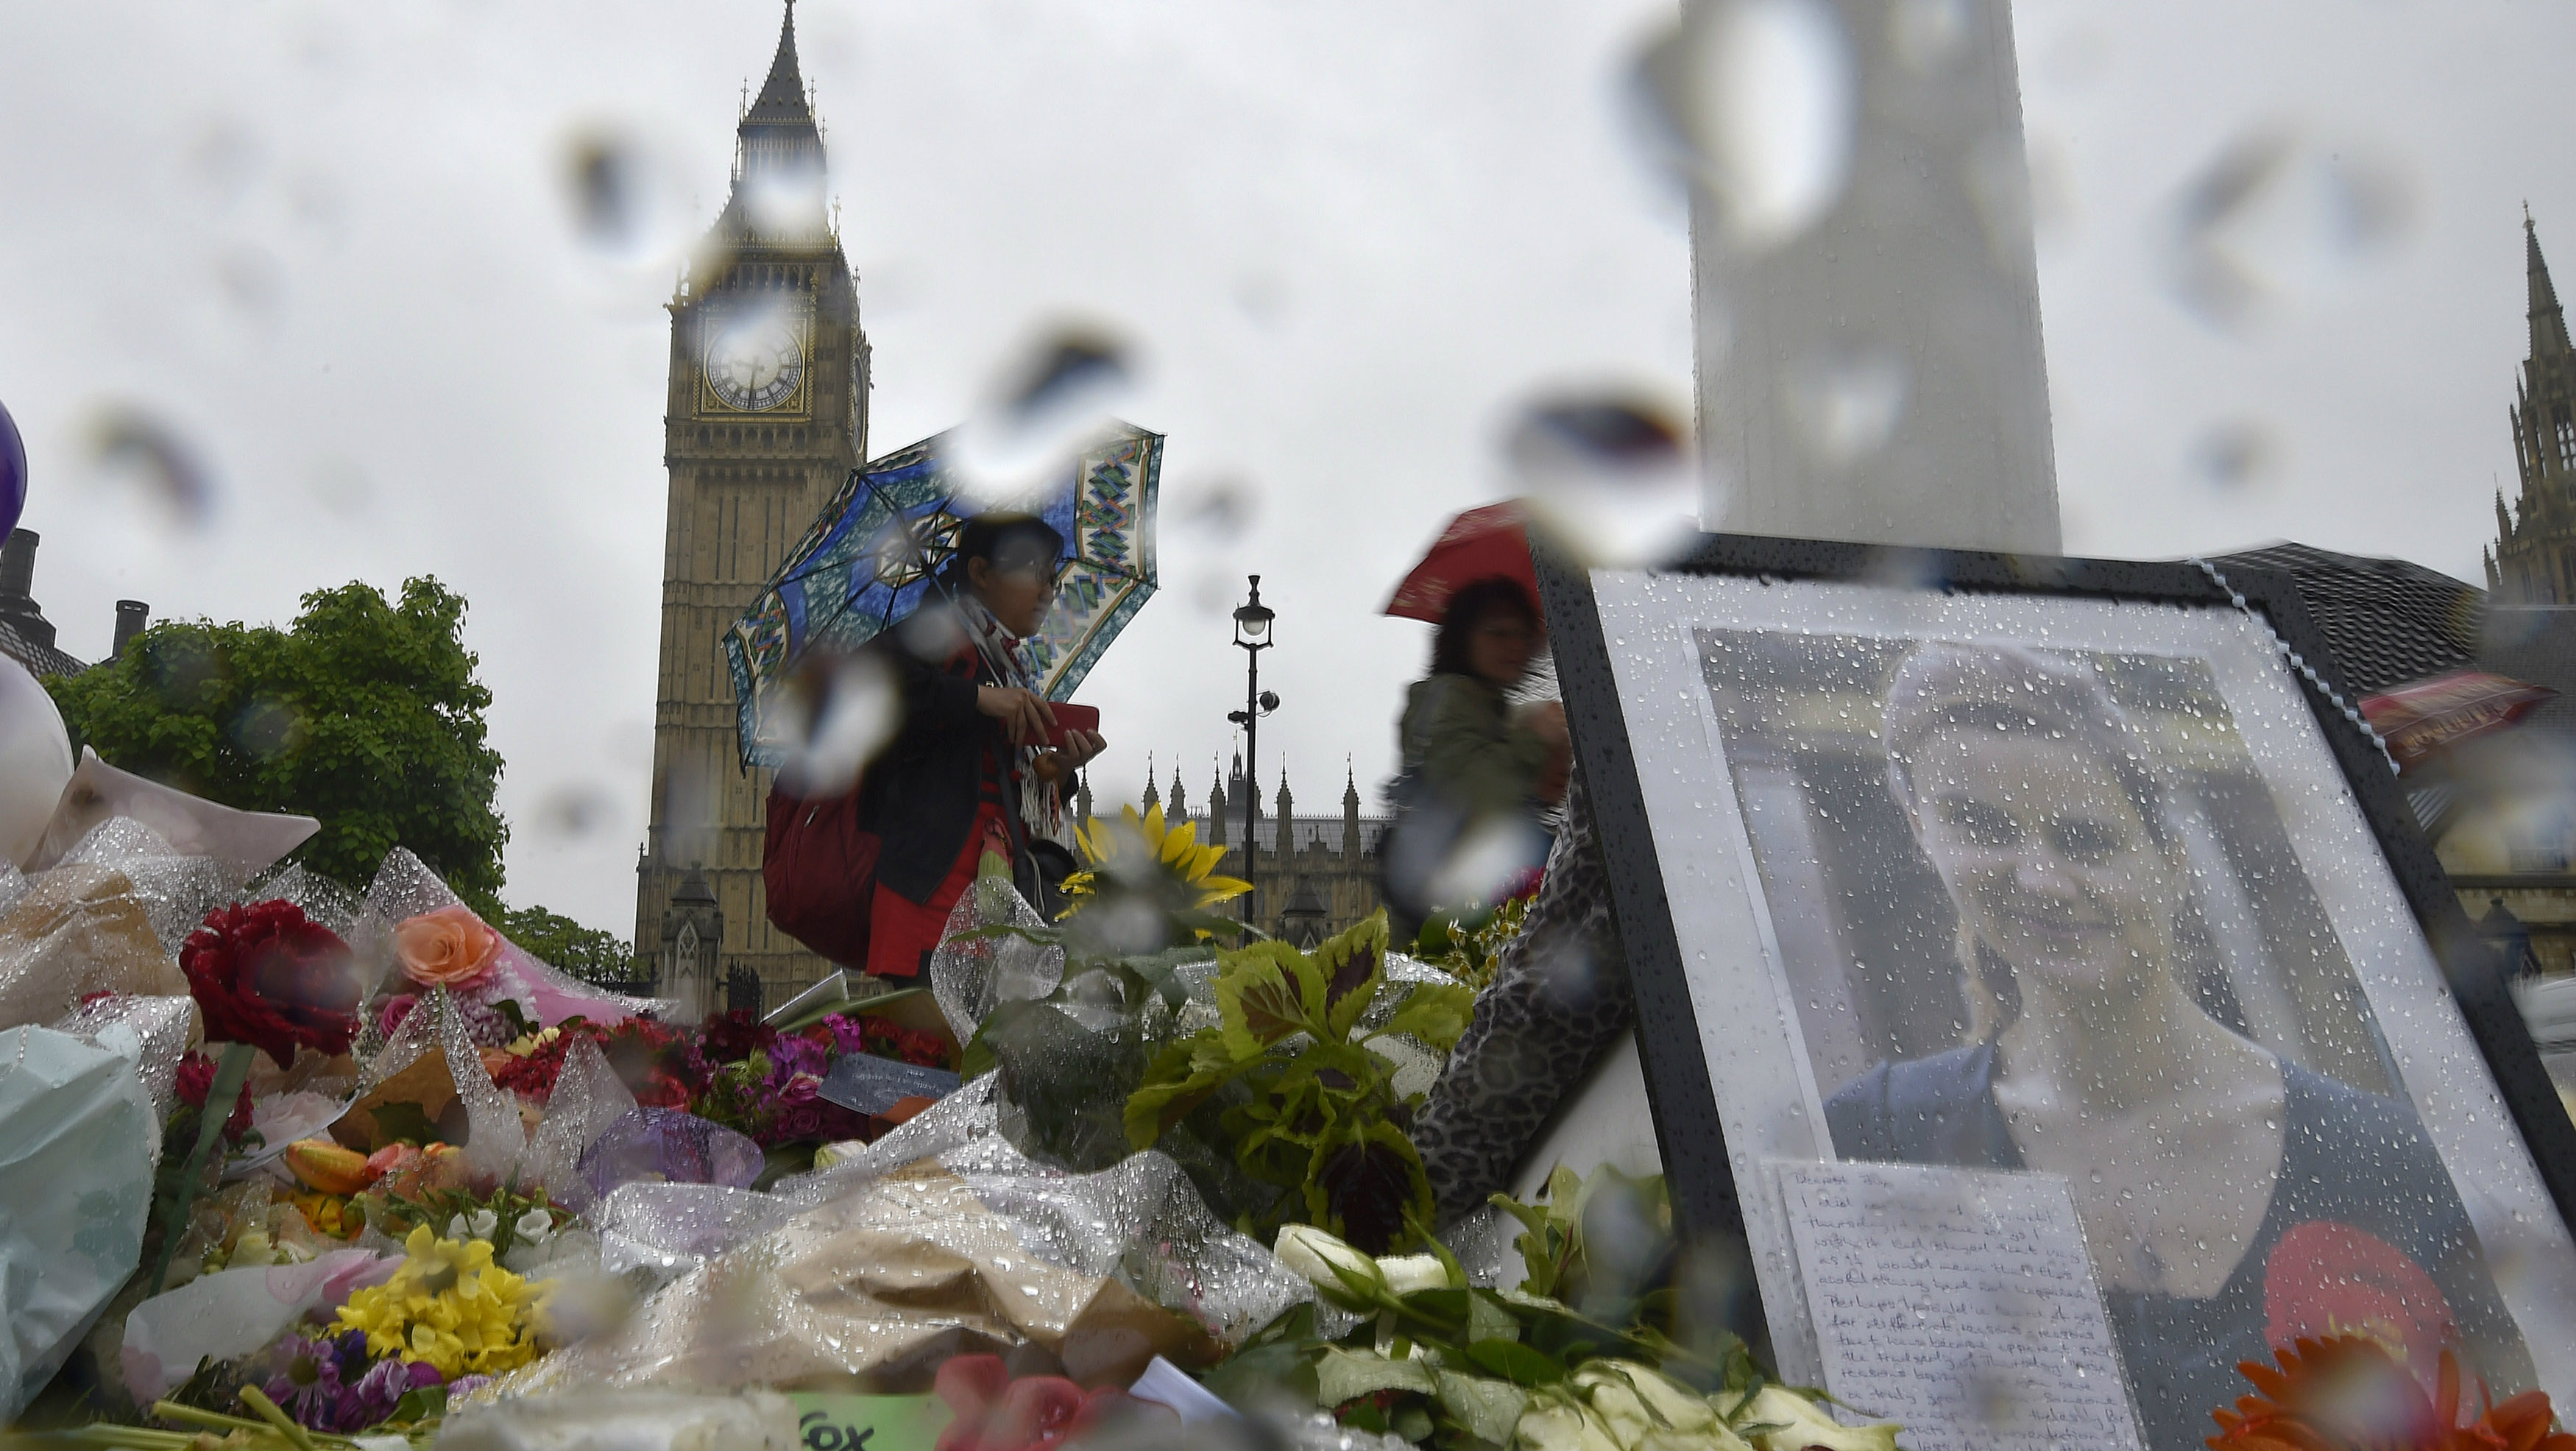 Tributes laid in memory of murdered MP Jo Cox at Parliament Square, London.